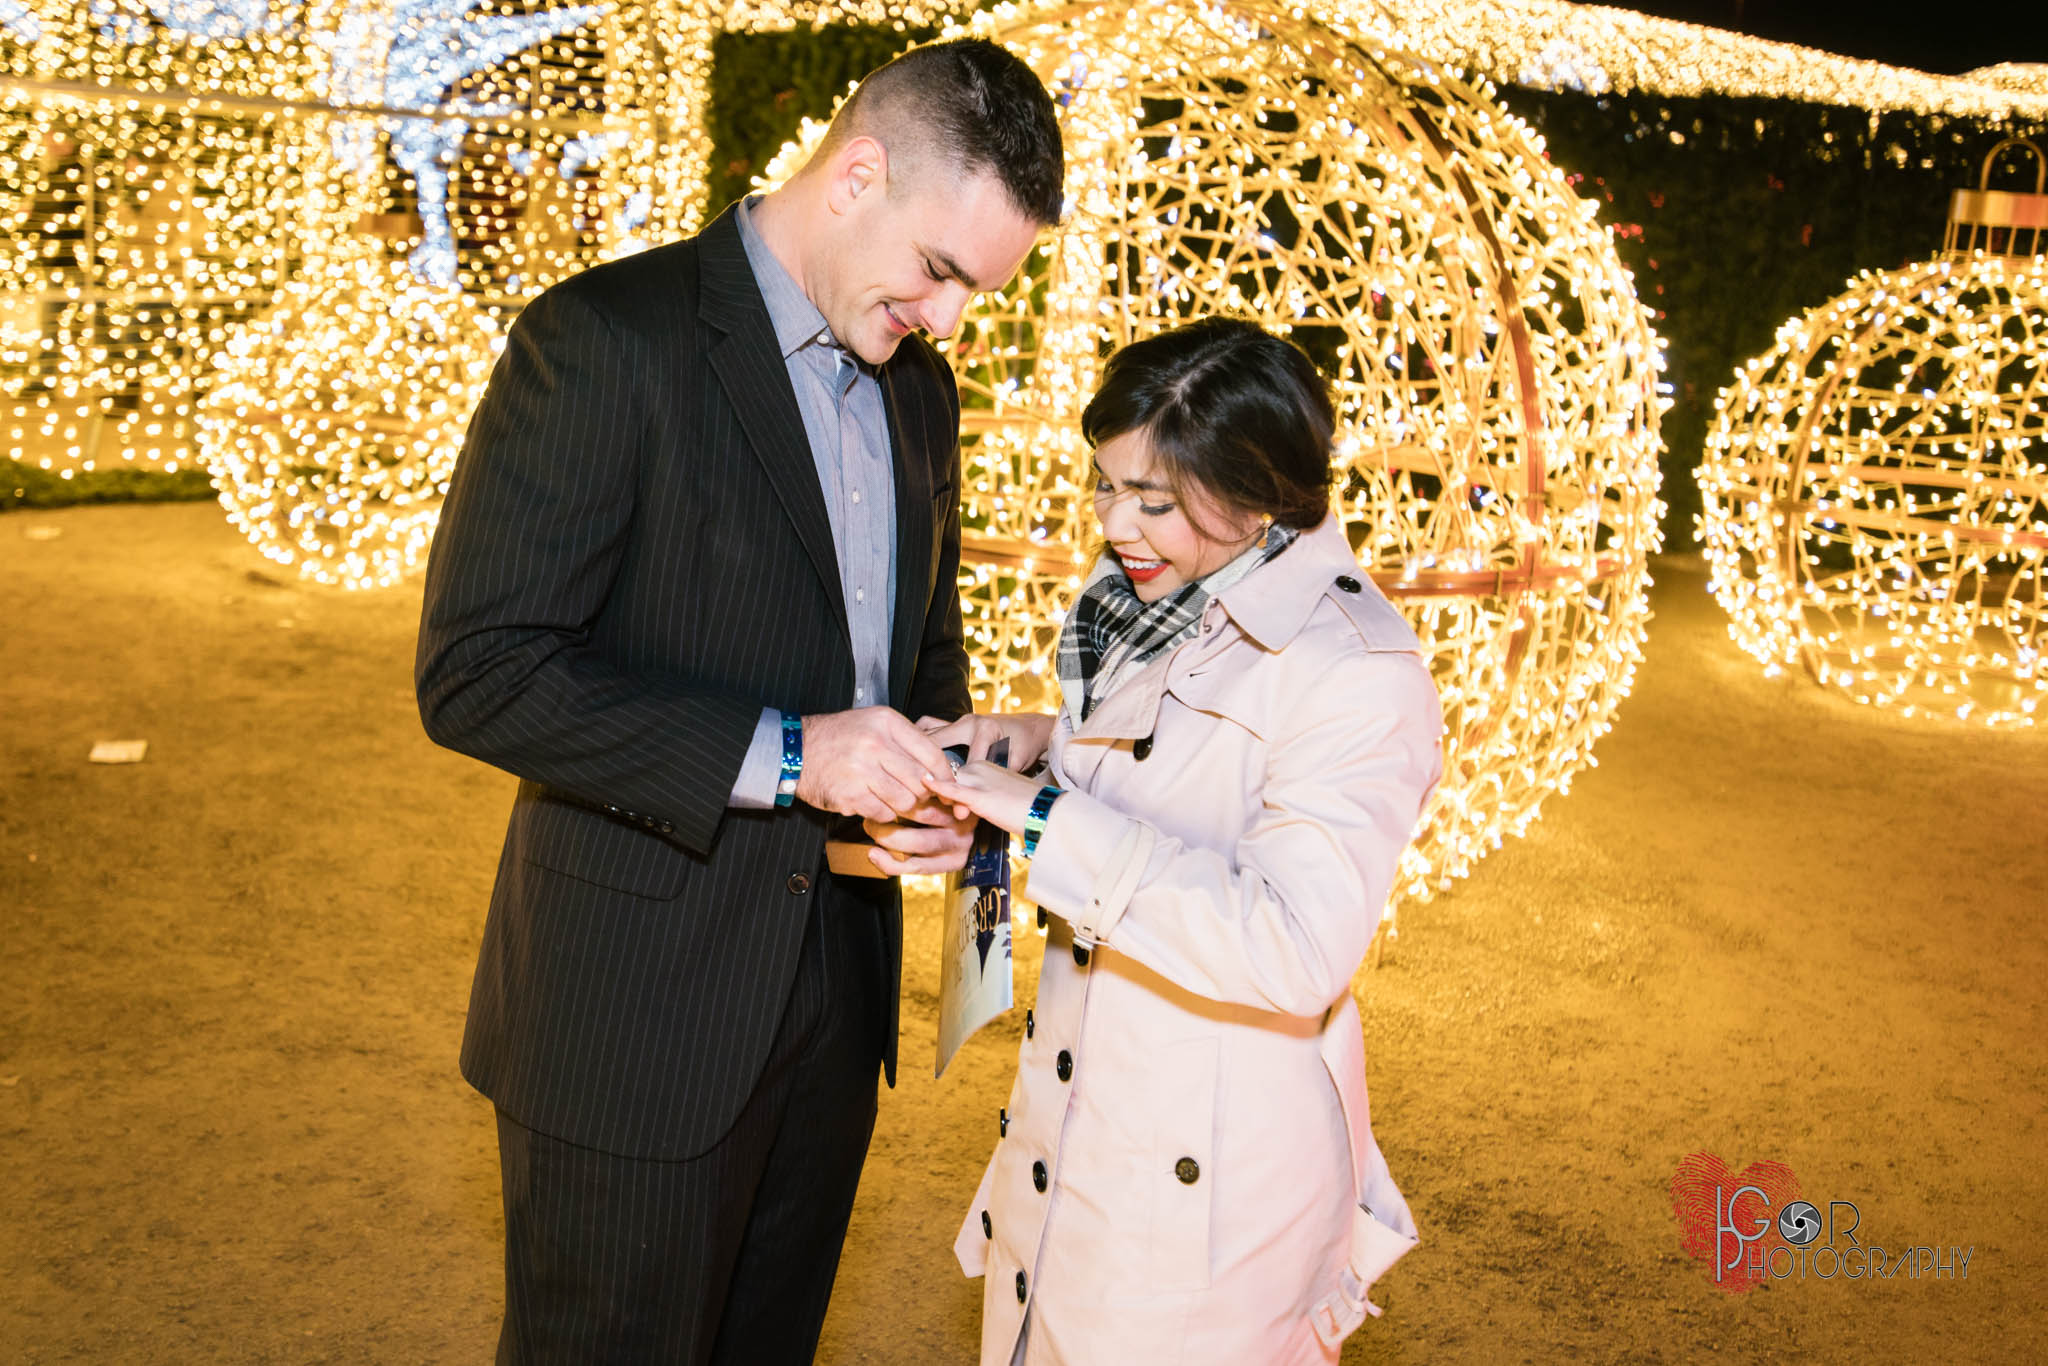 Christmas proposal photos